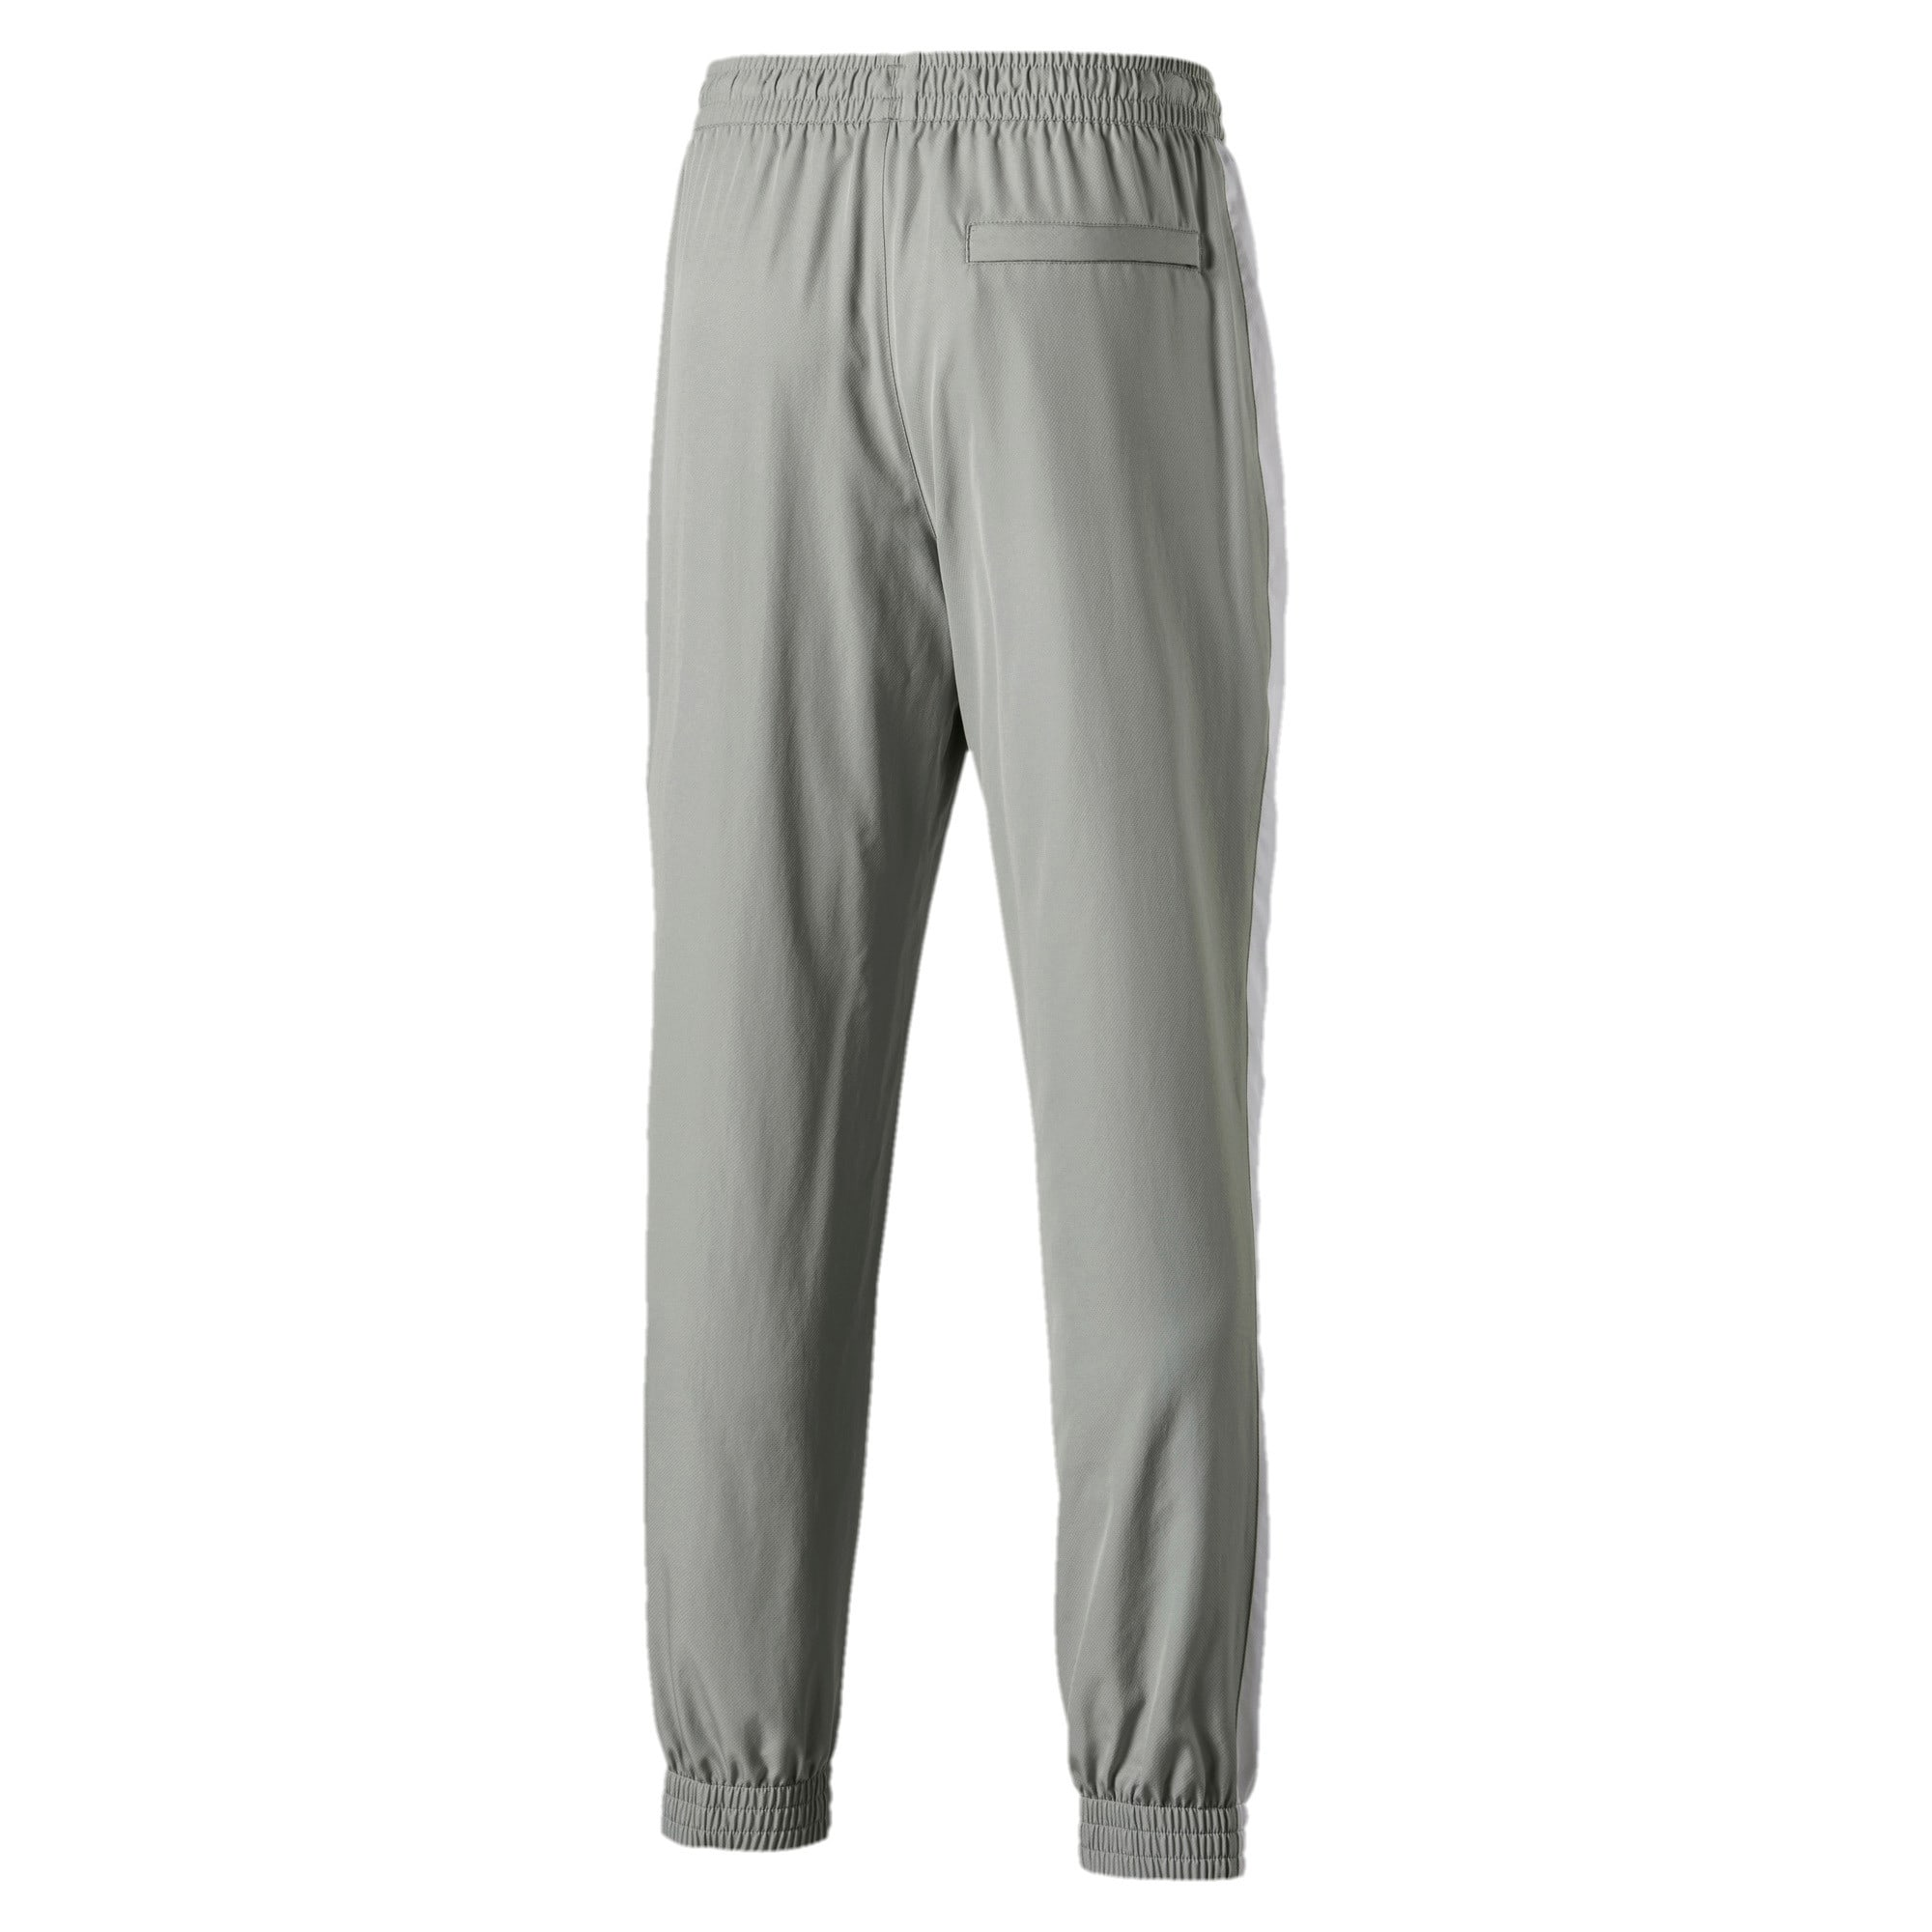 Thumbnail 5 of Iconic T7 Woven Men's Sweatpants, Limestone, medium-IND